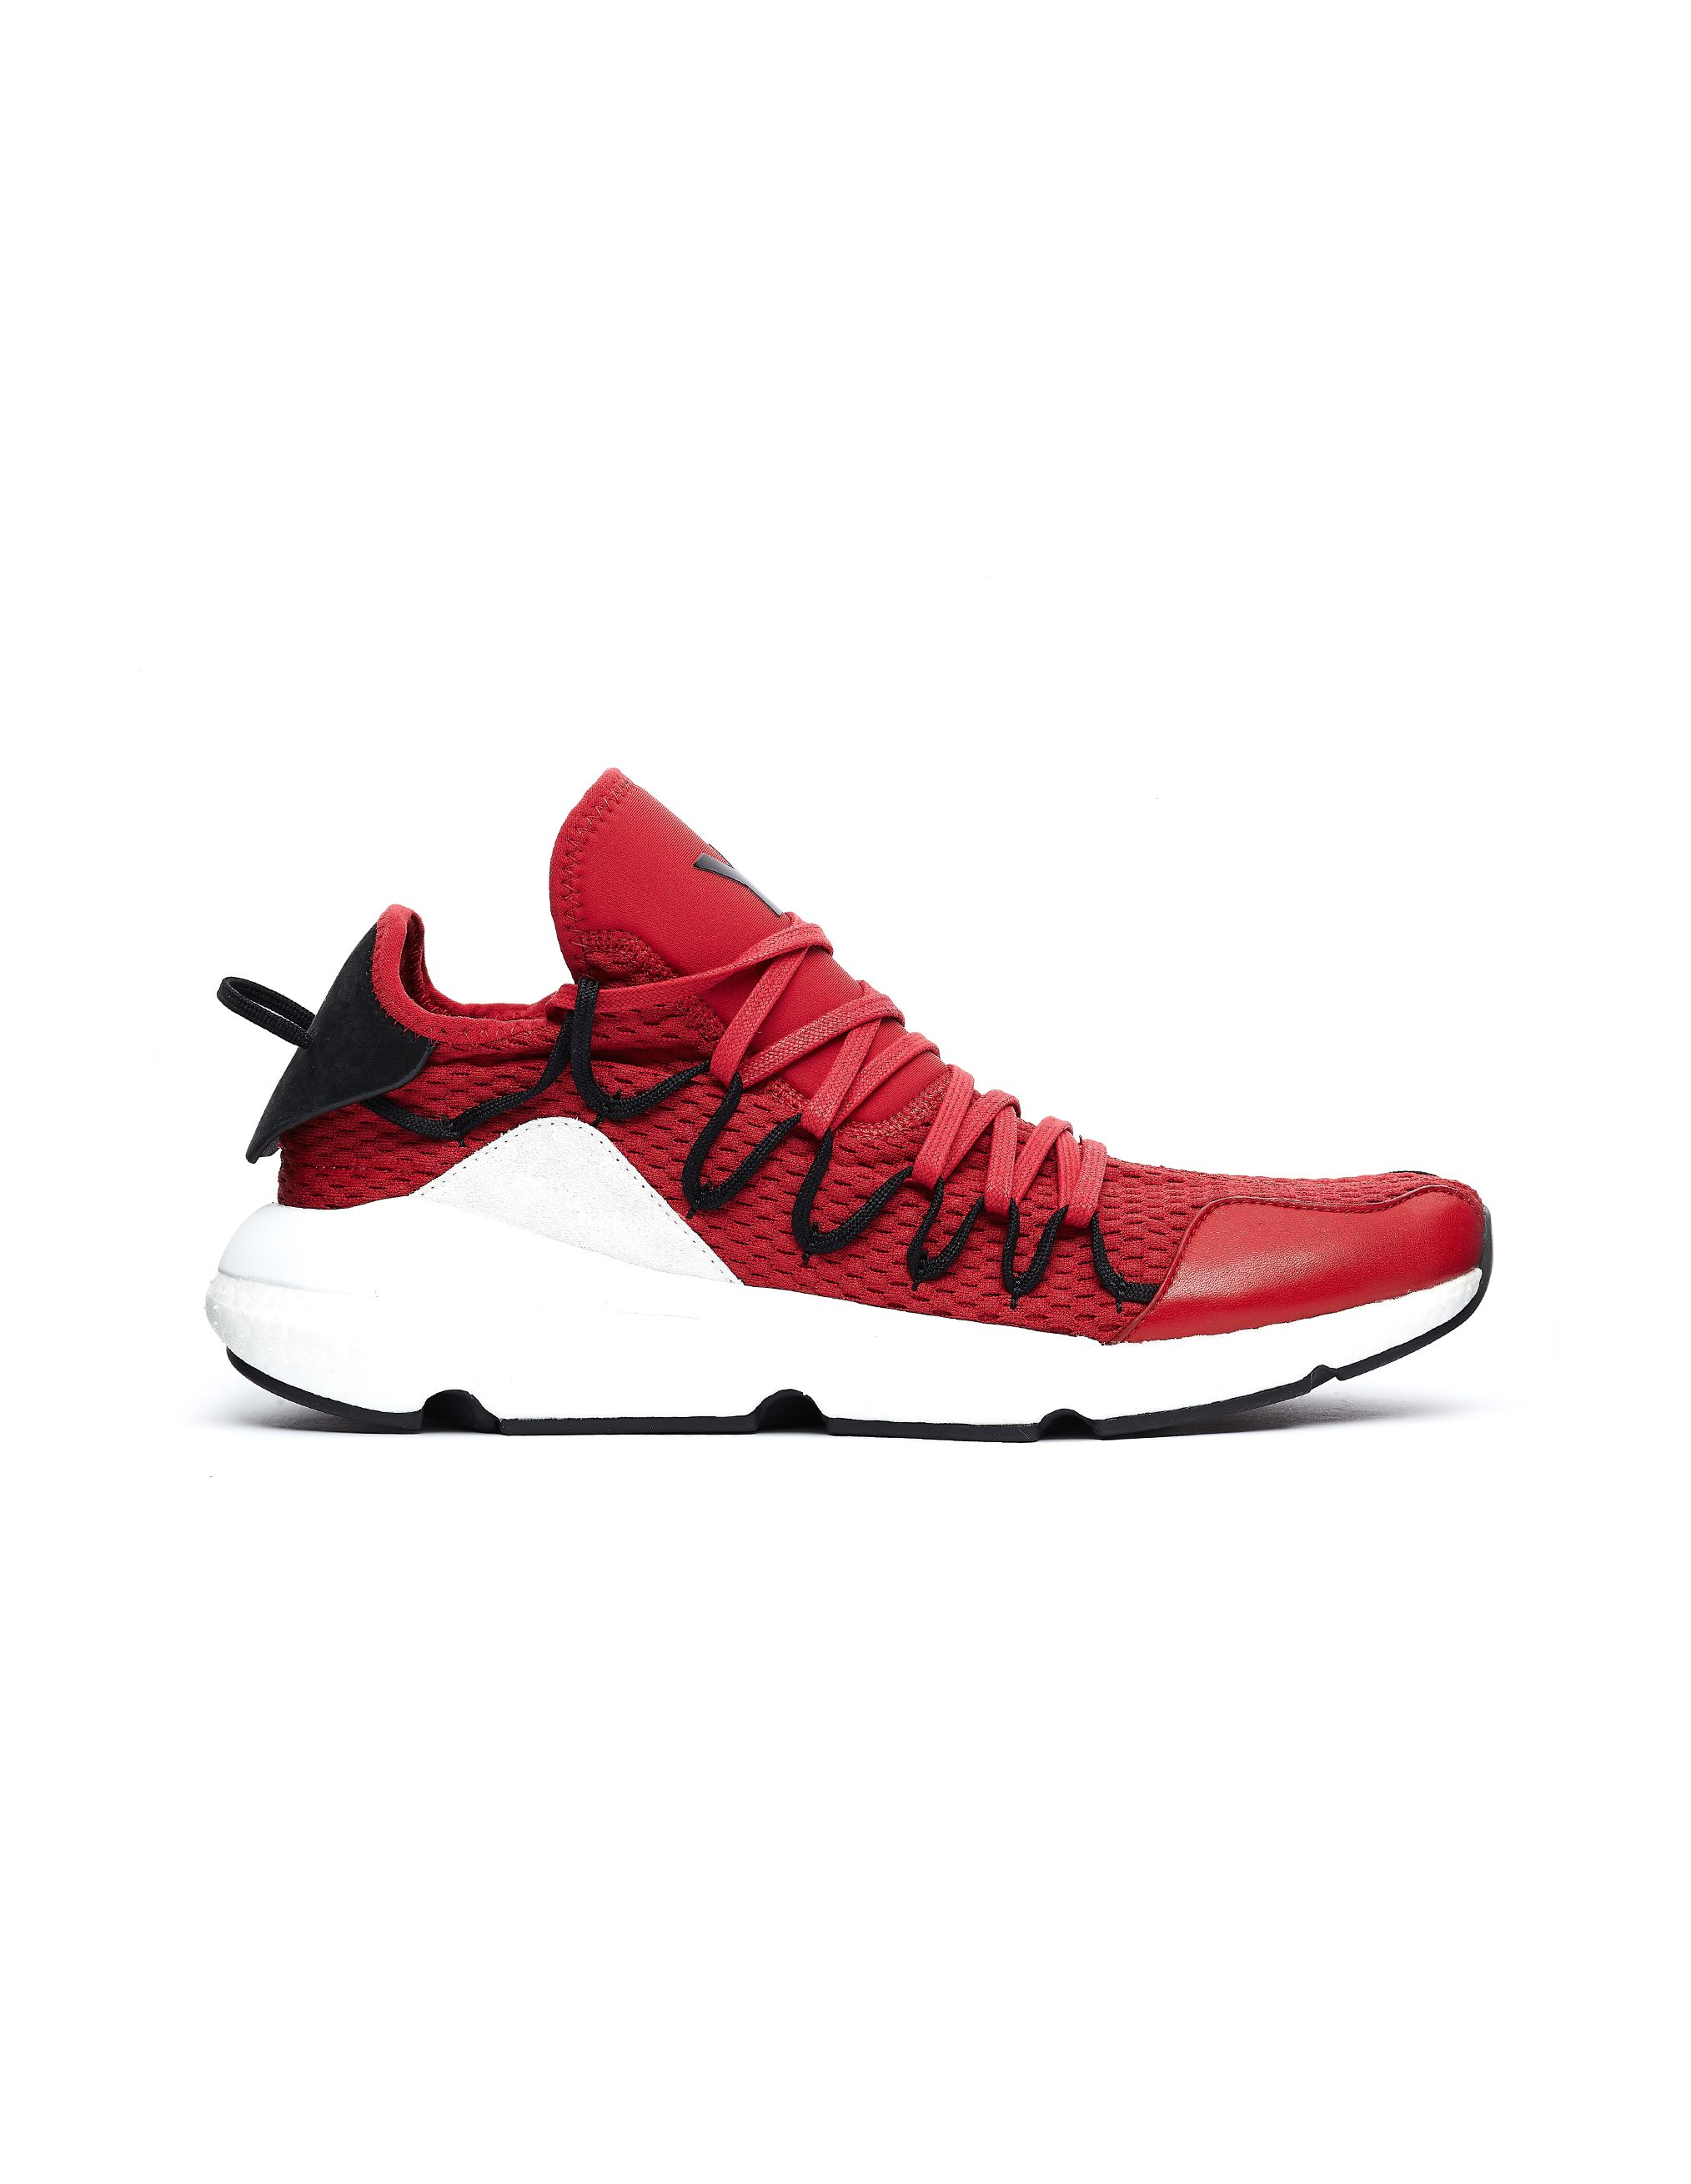 b379bc3fd Y-3 RED KUSARI SNEAKERS.  y-3  shoes